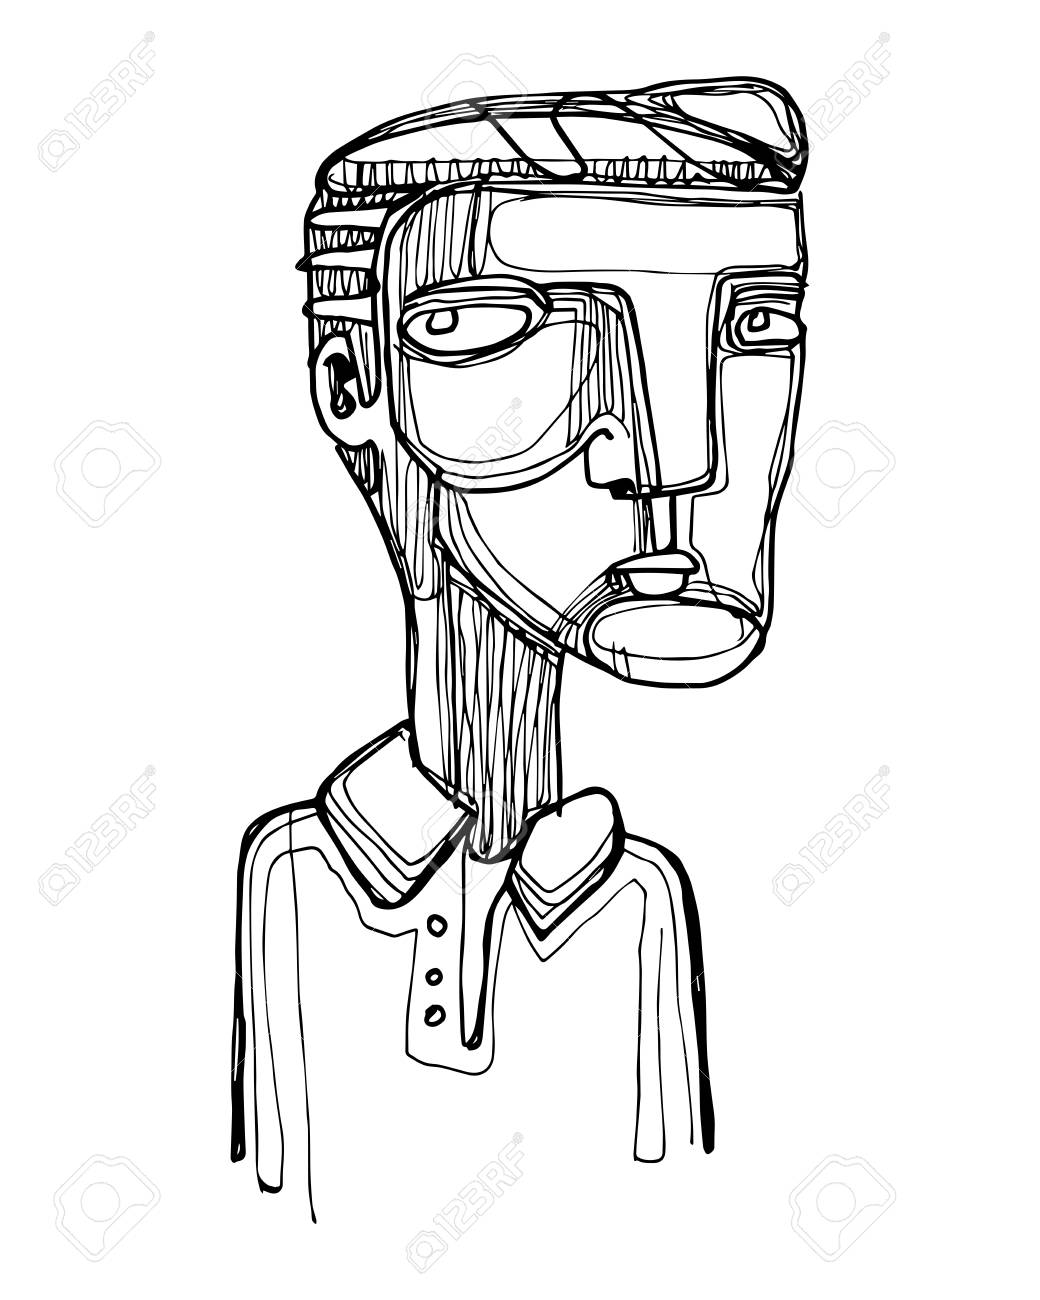 1040x1300 Vector Illustration Or Drawing Of A Cartoon Of A Man With Skeptic